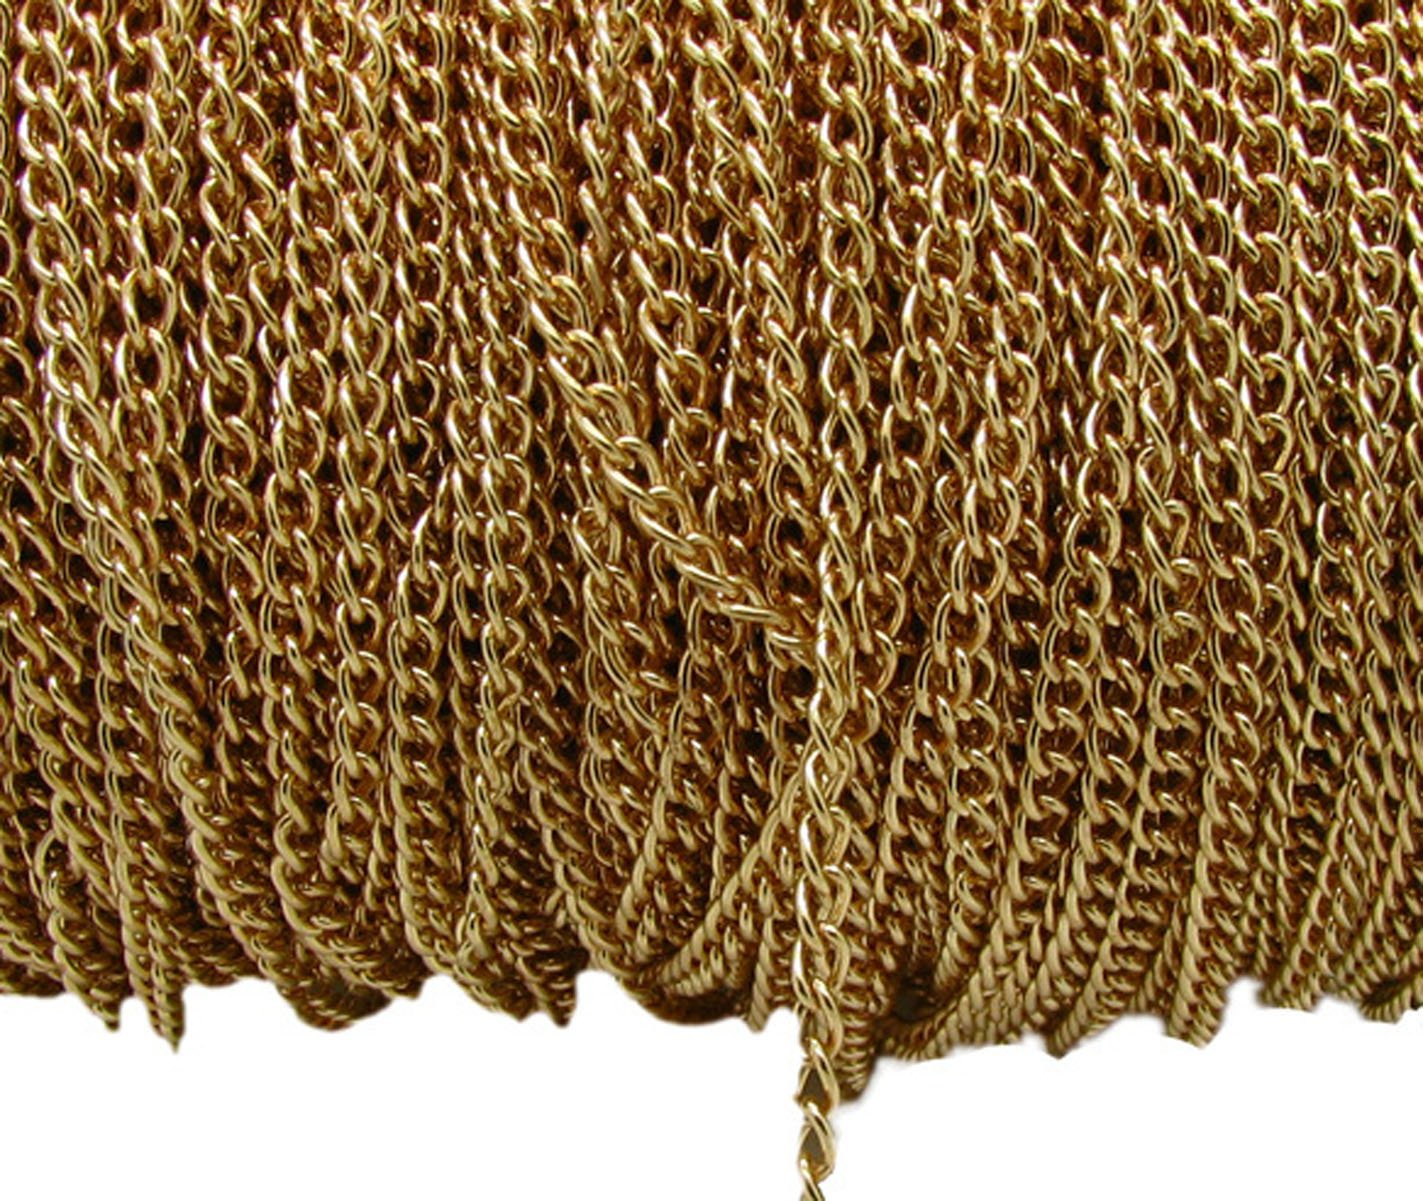 32.8 Ft Iron Twisted Flat Cross Chains - DIY Cable Chain Jewelry Making Chain Necklace Bracelet Jewelry Accessories (Bronze, 2.5mm) Numblartd